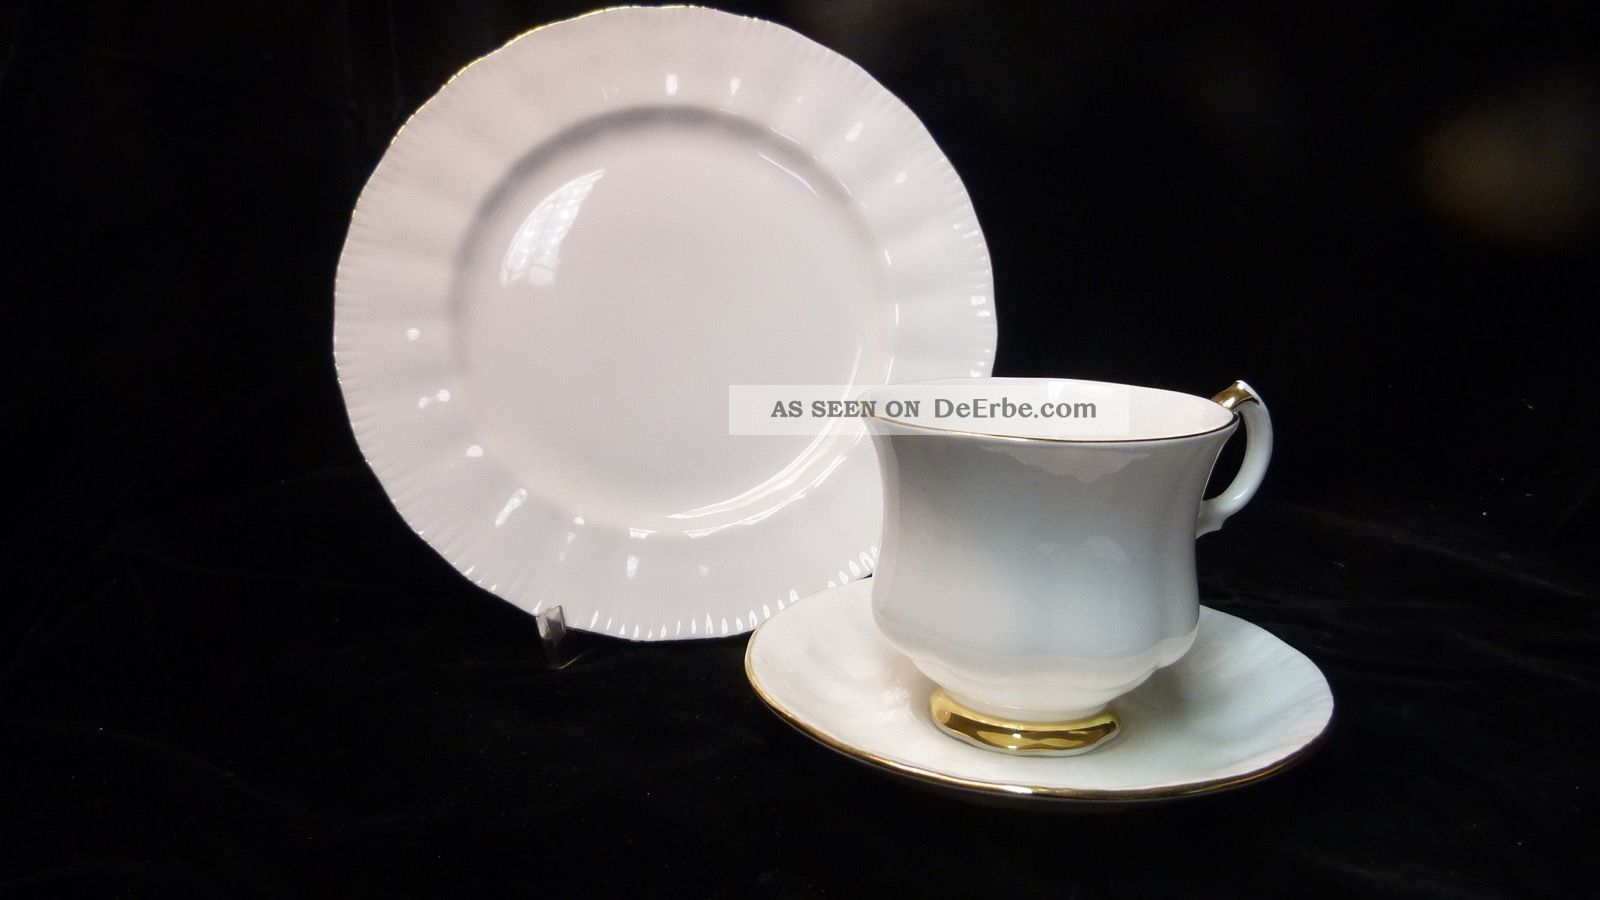 Royal Knight - Sammelgedeck - Bone China Porzellan - England - Vintage Nach Form & Funktion Bild